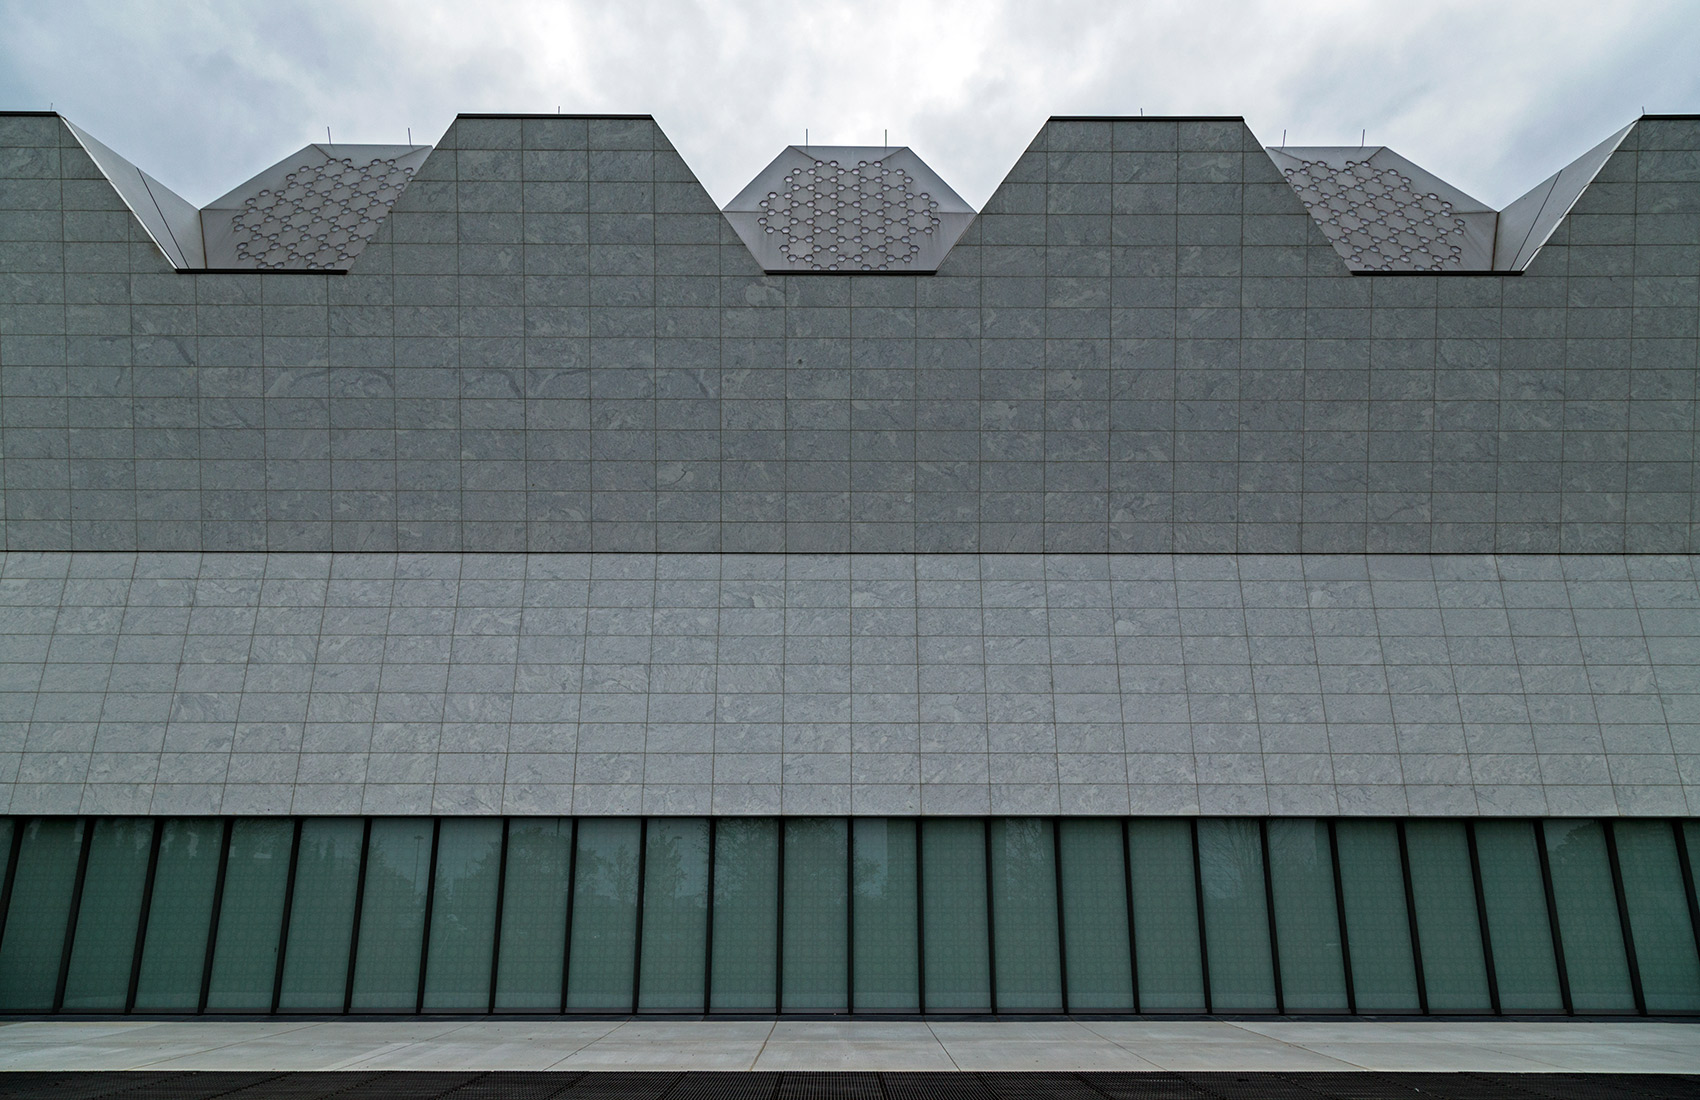 20140916. A section of south elevation of Toronto's Aga Khan Mus